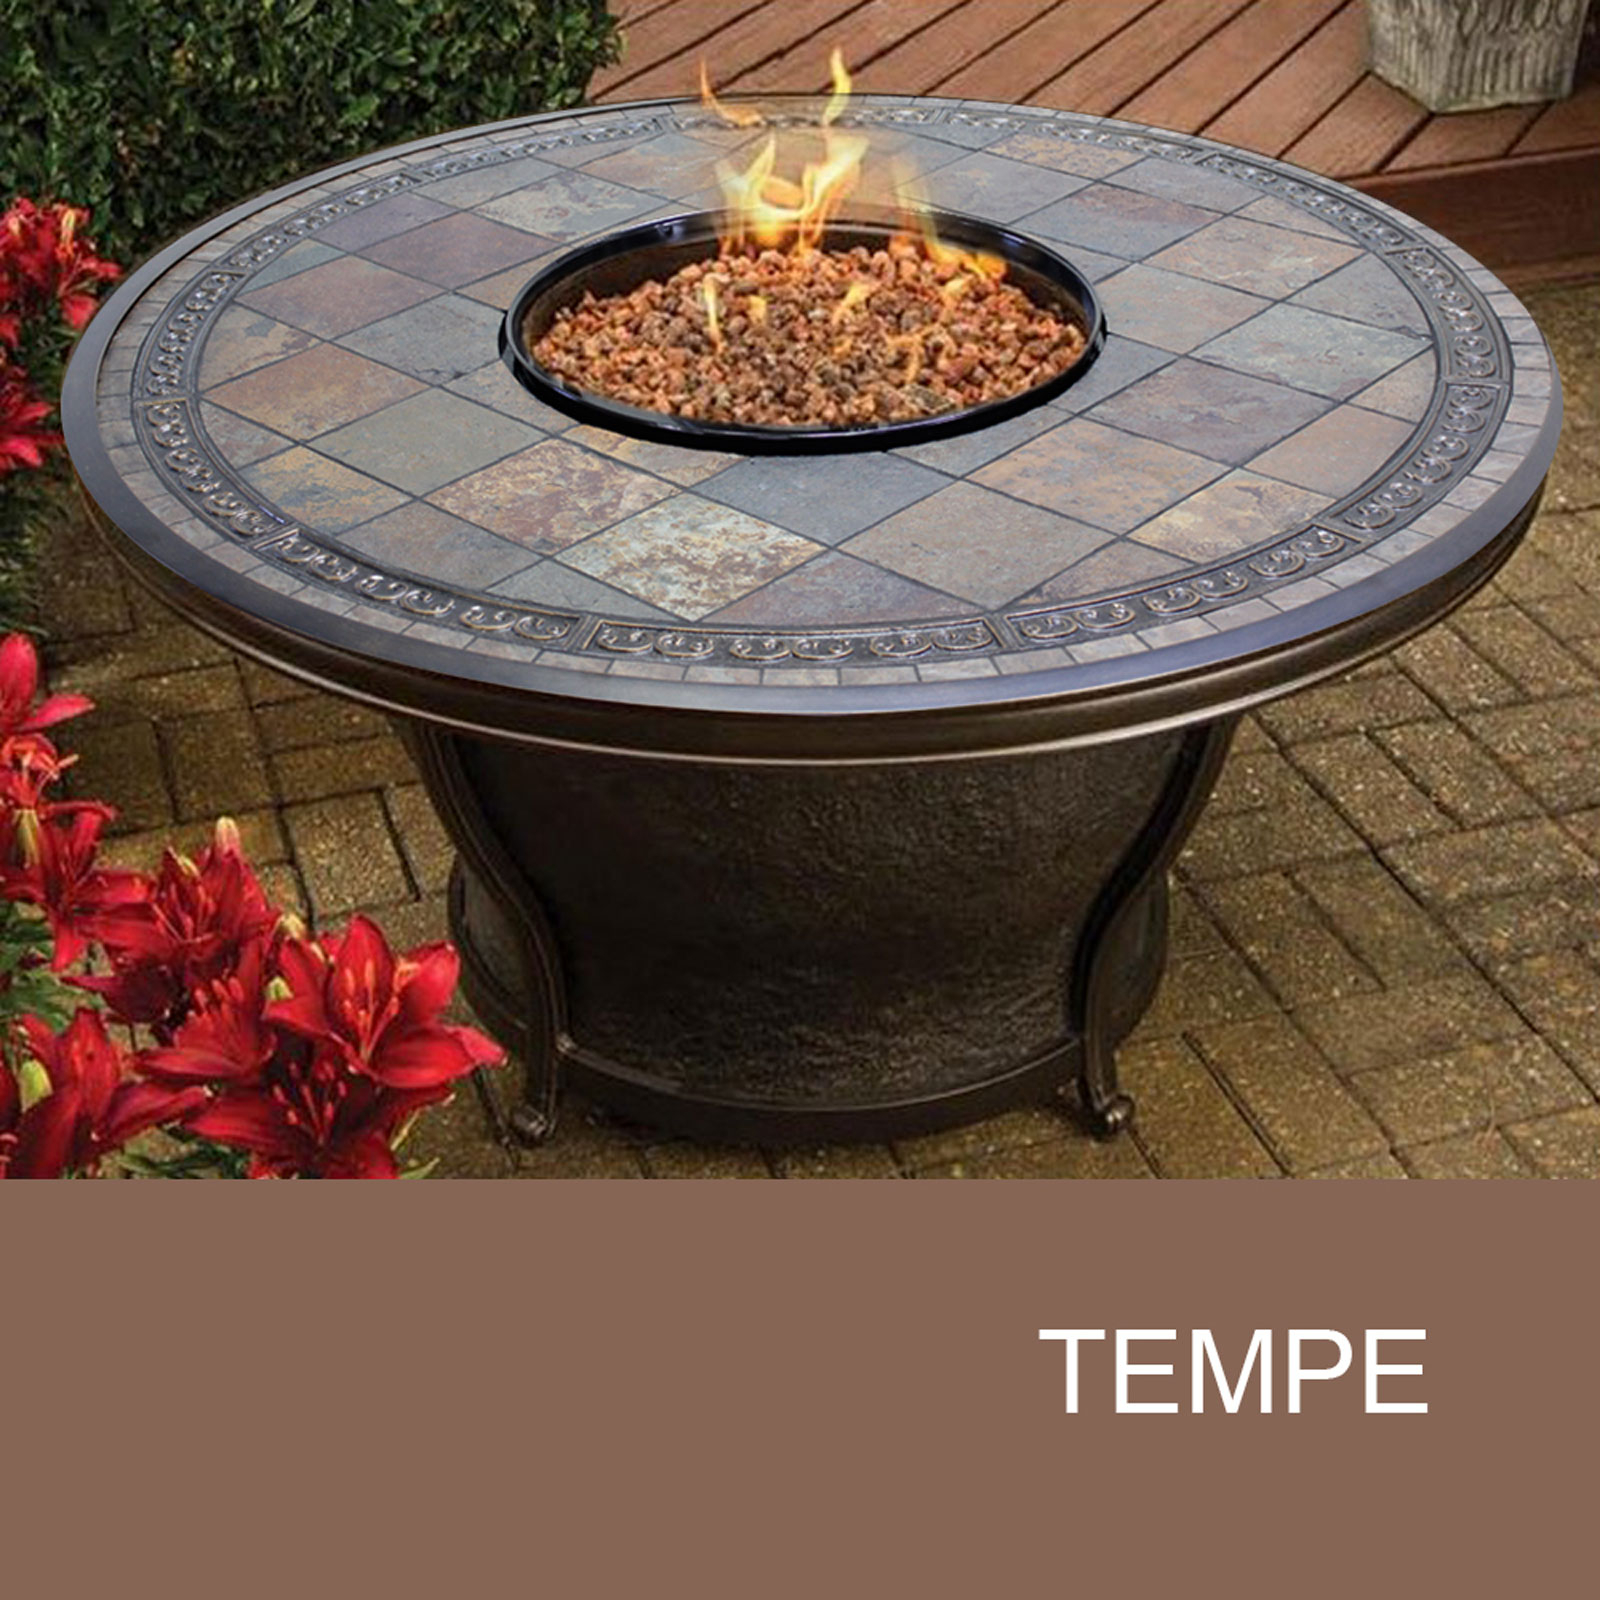 Slate Fire Pit Table Agio Tempe Fire Pit Design Furnishings pertaining to dimensions 1600 X 1600